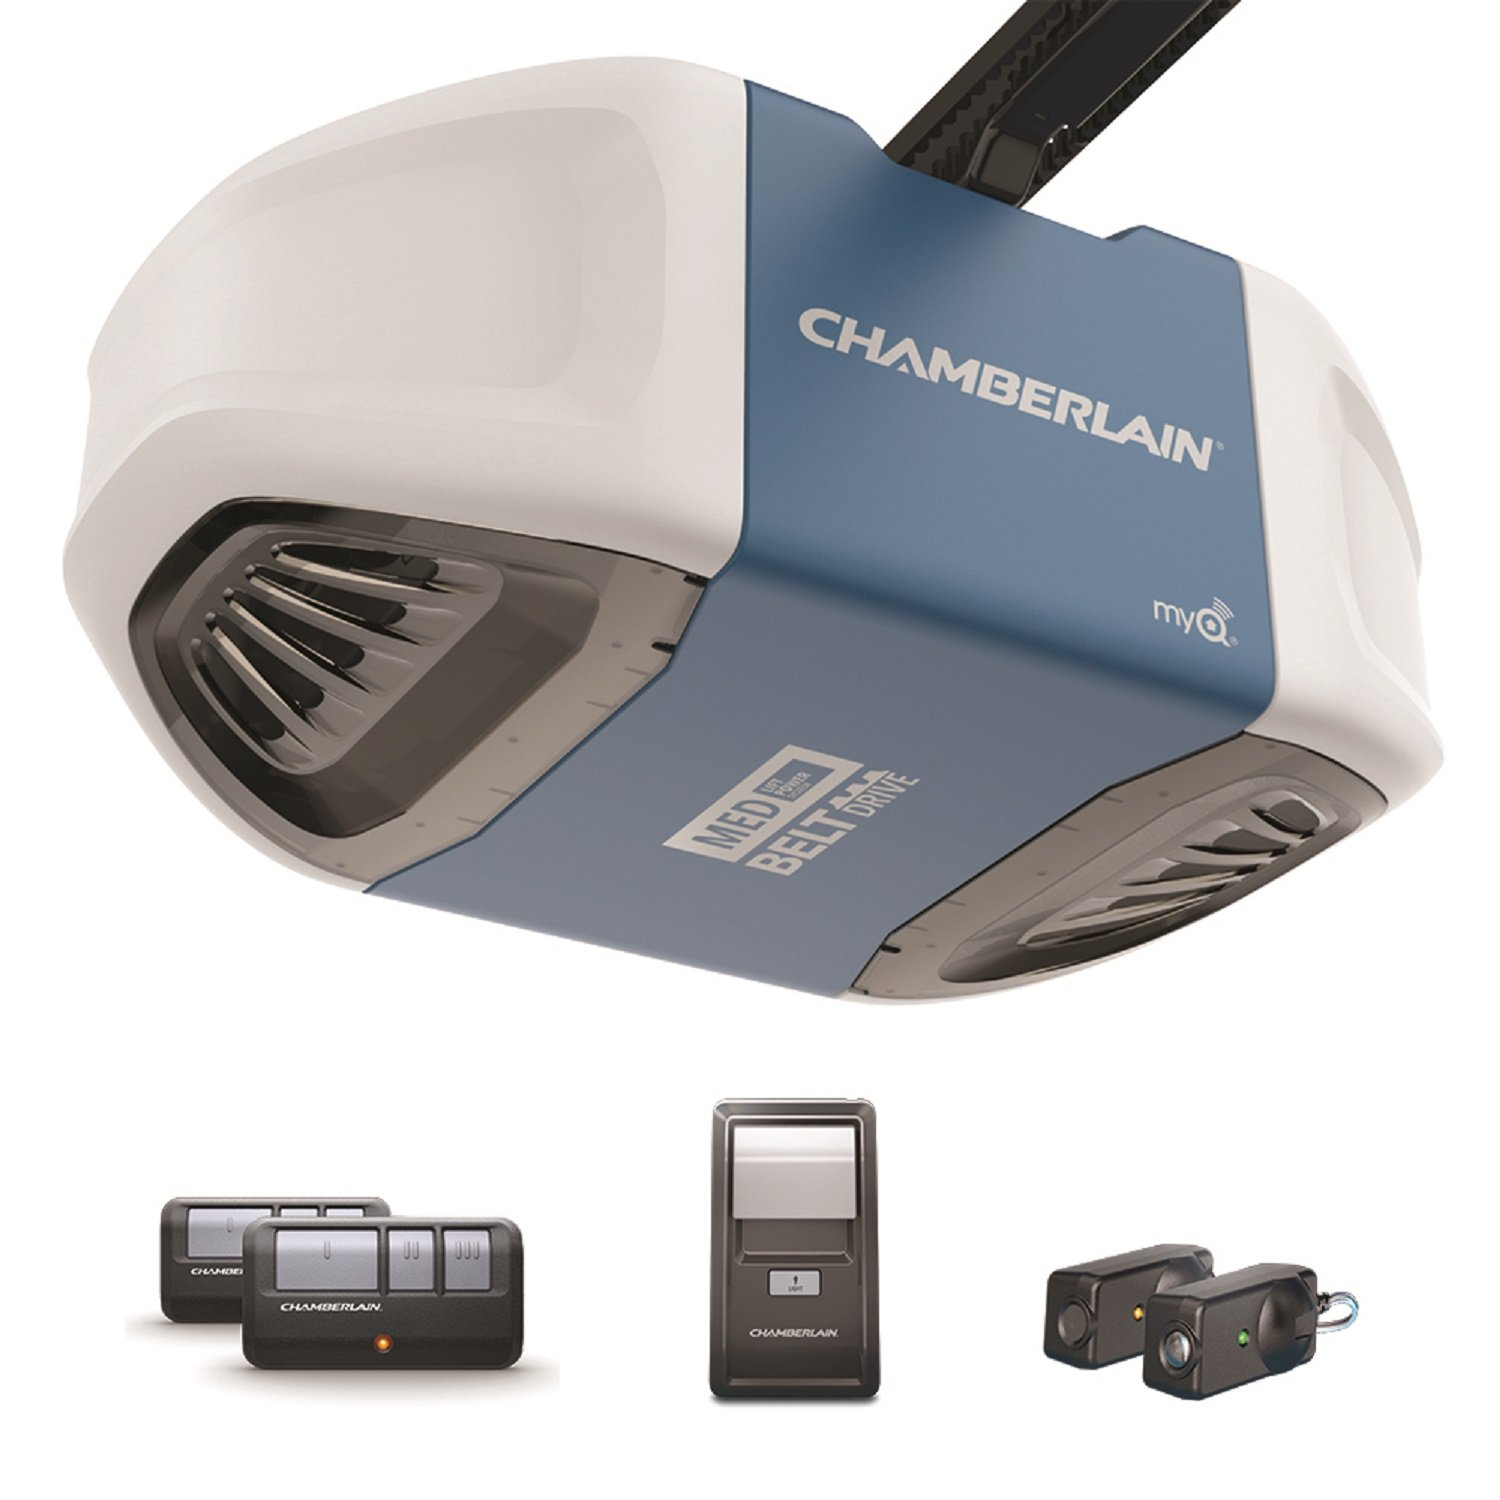 Chamberlain B503 Ultra-Quiet and Strong Belt Drive Garage Door Opener with Med Lifting Power, Blue